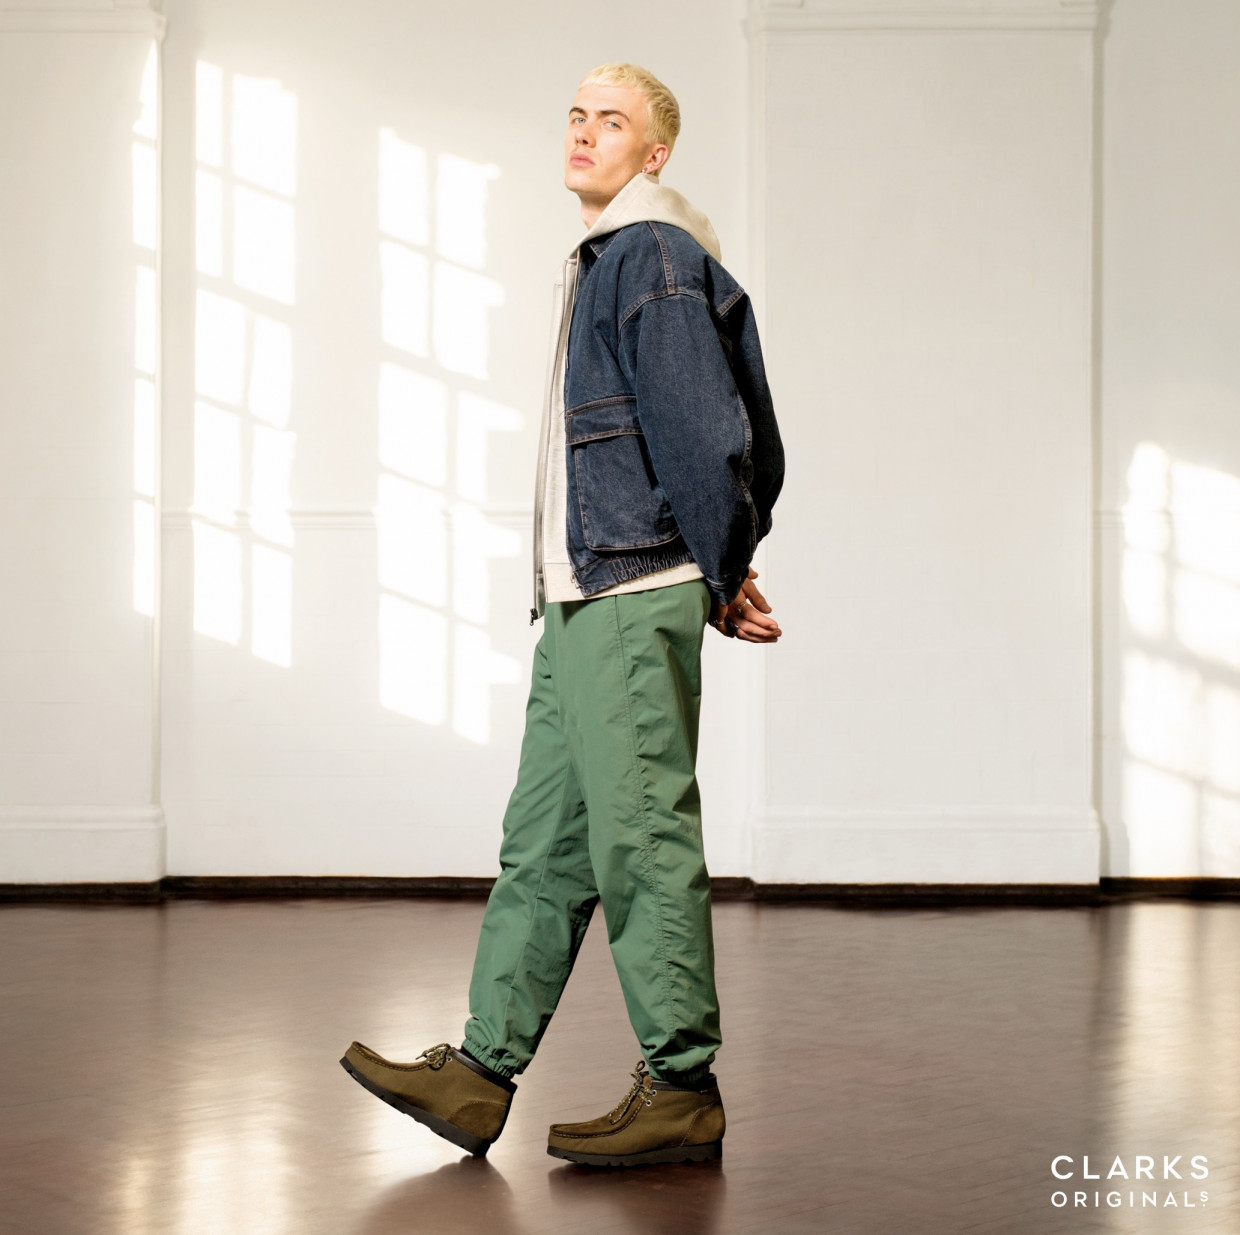 Clarks ORIGINALS POP UP SHOP